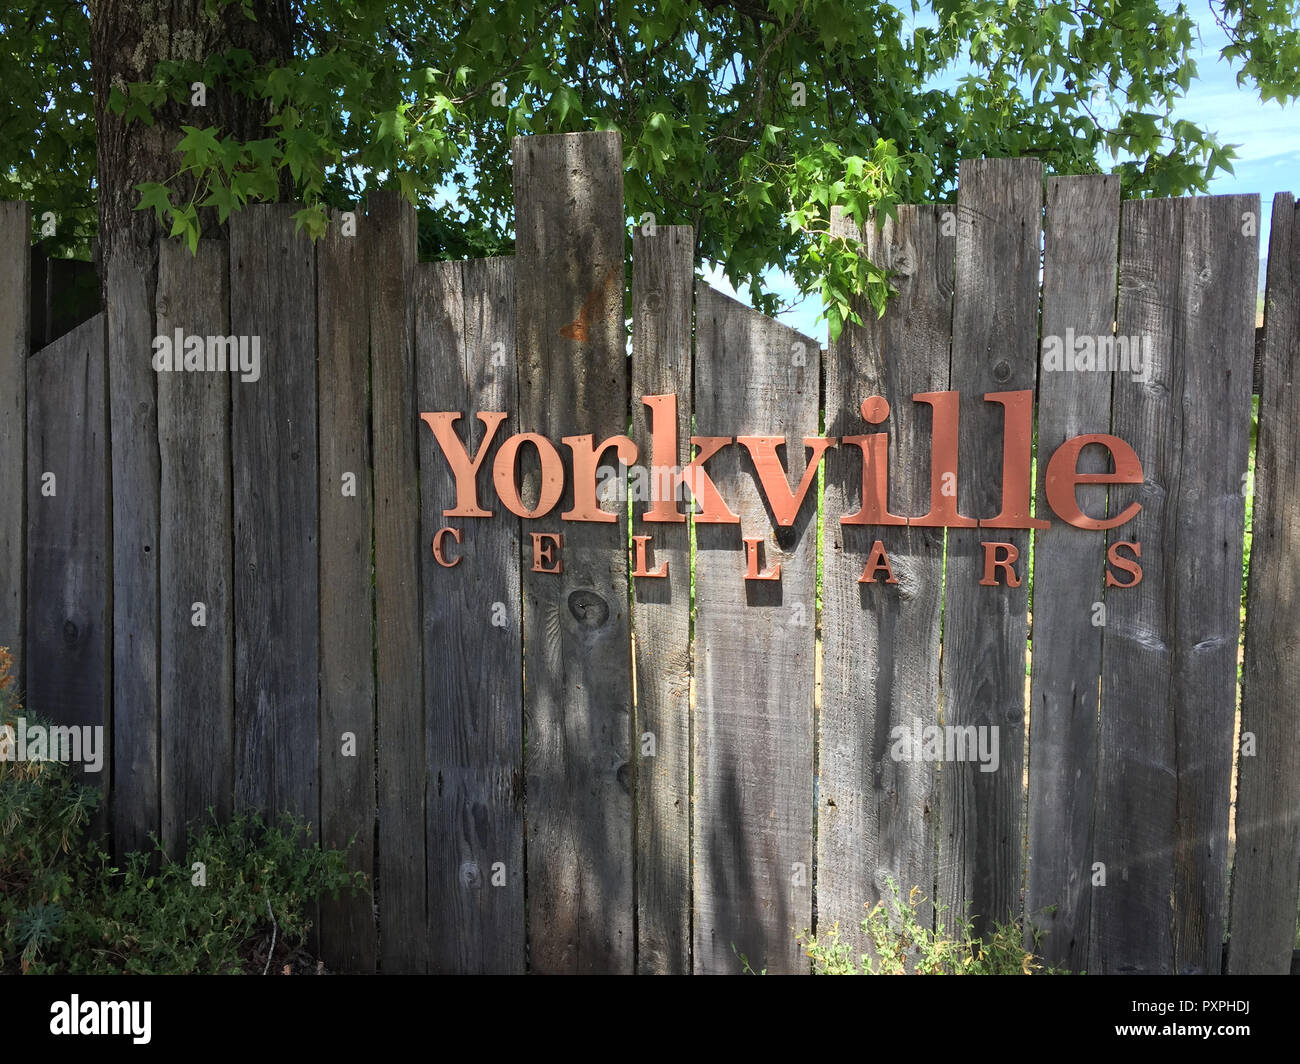 JULY 1 2018 - YORKVILLE, CALIFORNIA: Sign for the Yorkville Cellars, a winery in the Anderson Valley area of California on a sunny day - Stock Image